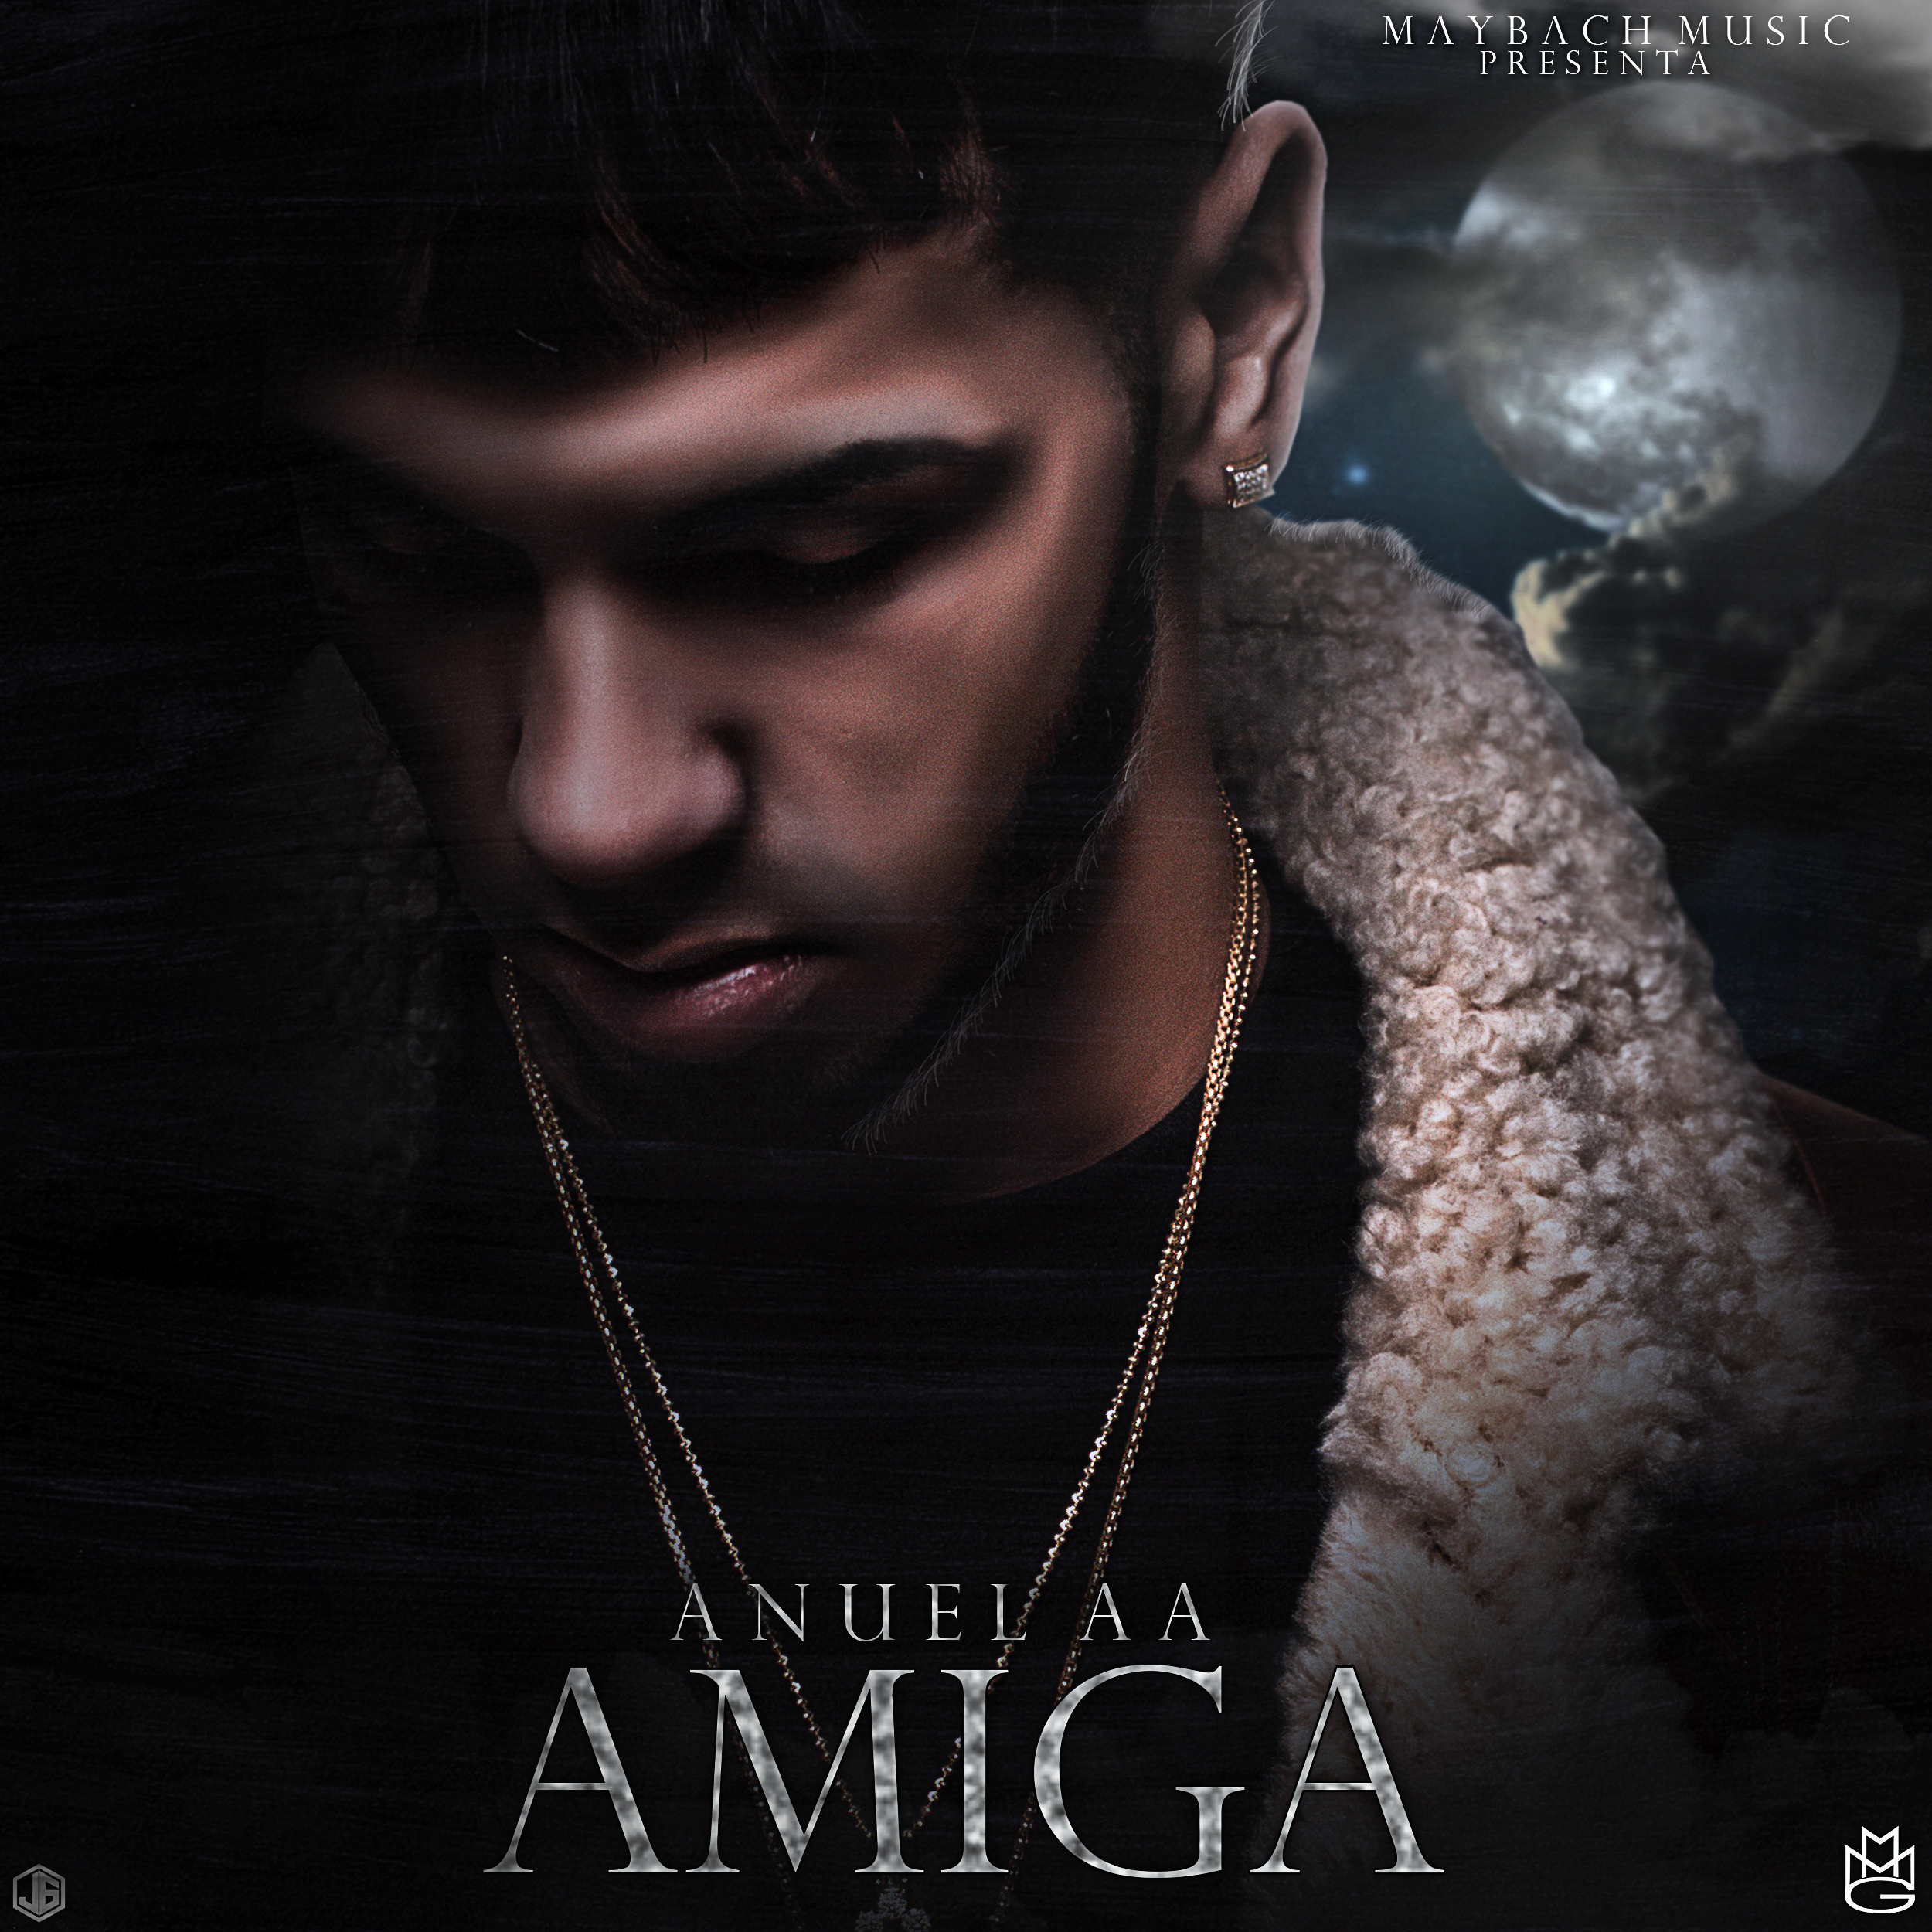 Anuel AA - Amiga MP3